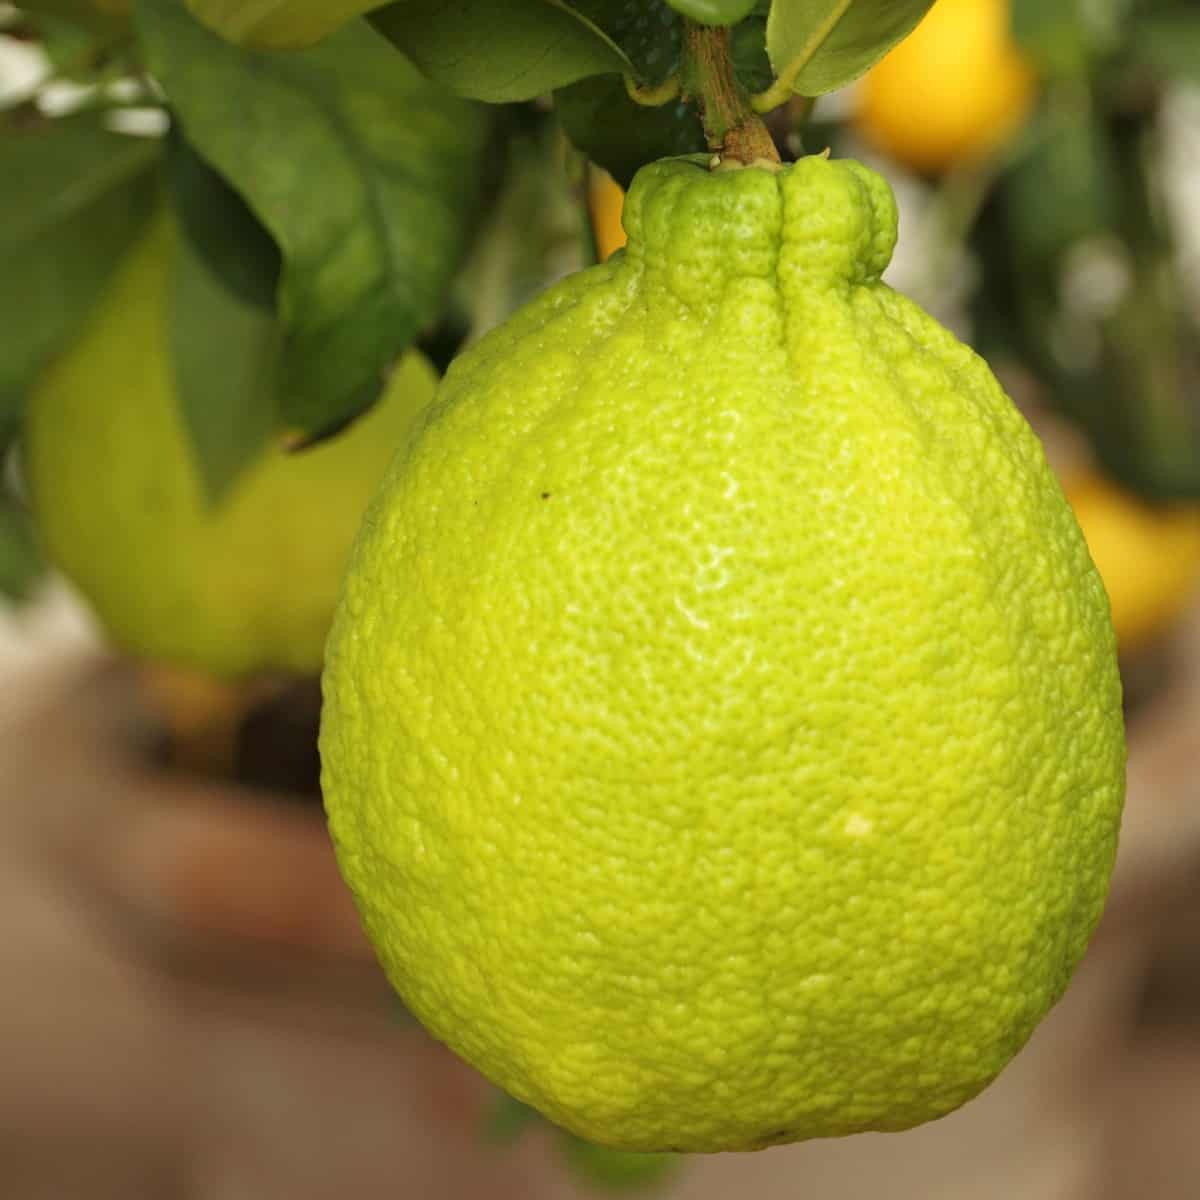 Tangelos are juicy members of the citrus family.